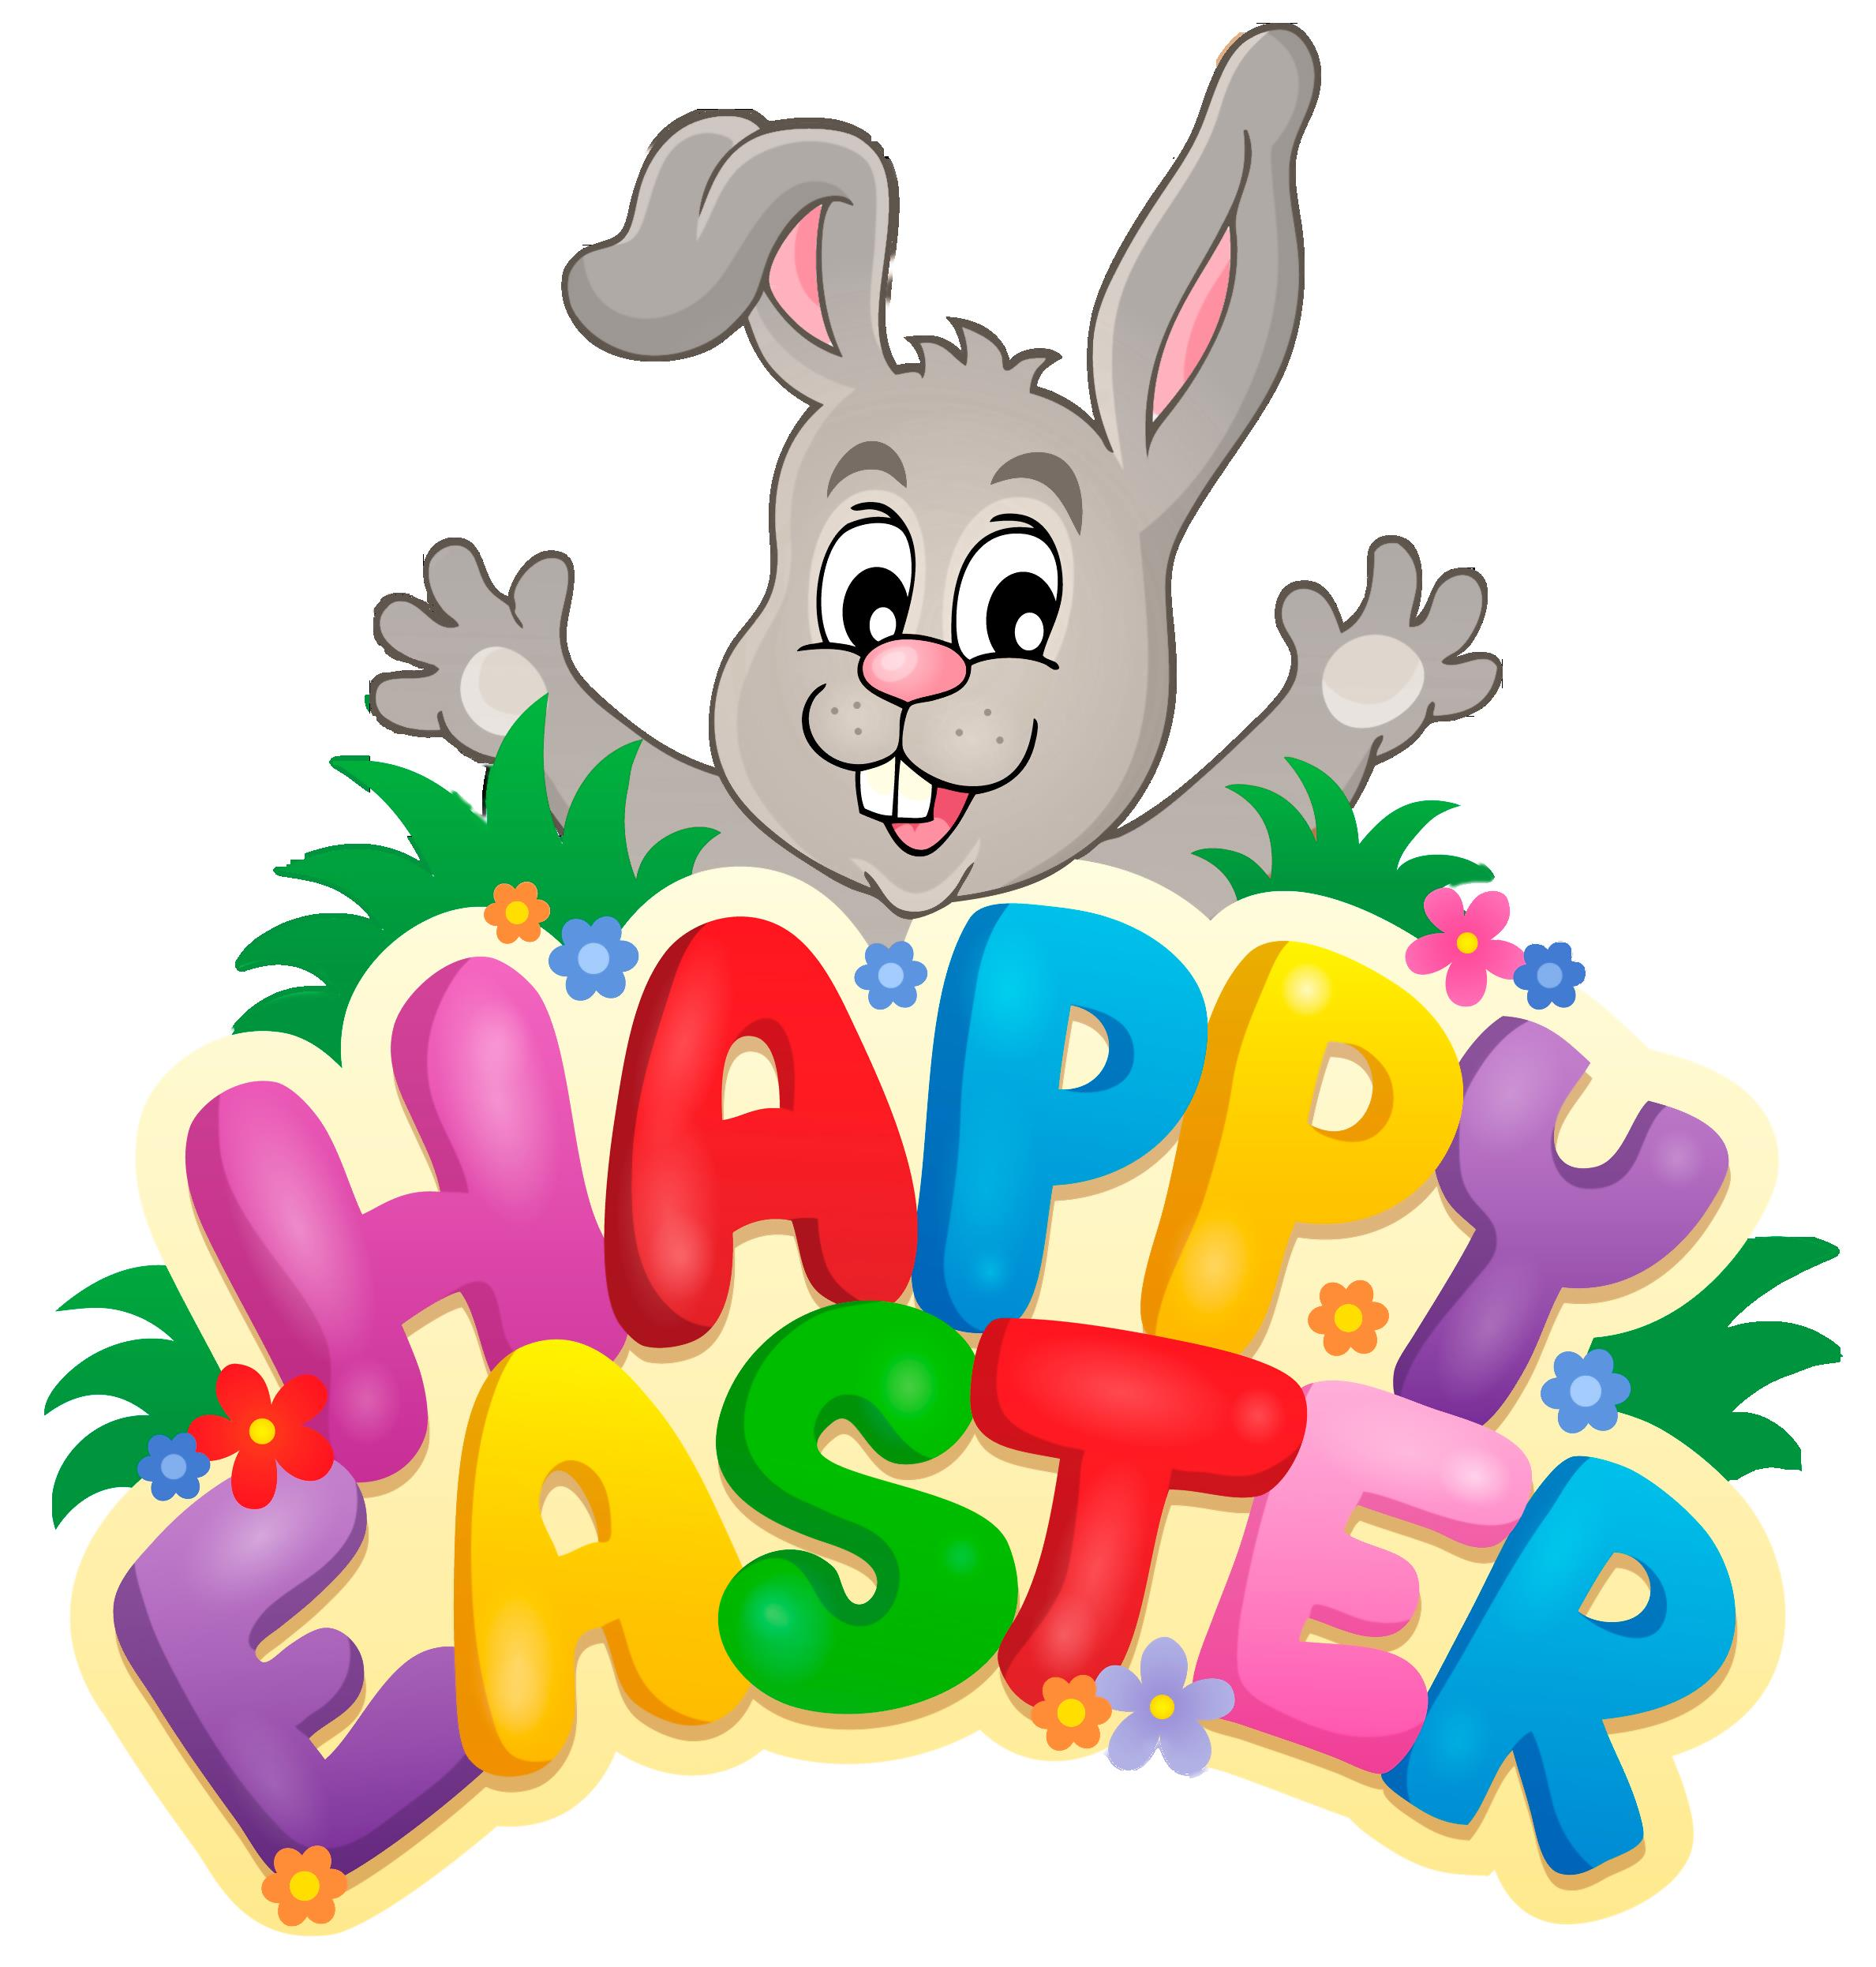 free printable easter bunny clipart at getdrawings com free for rh getdrawings com free printable easter bunny clipart free easter bunny clipart download